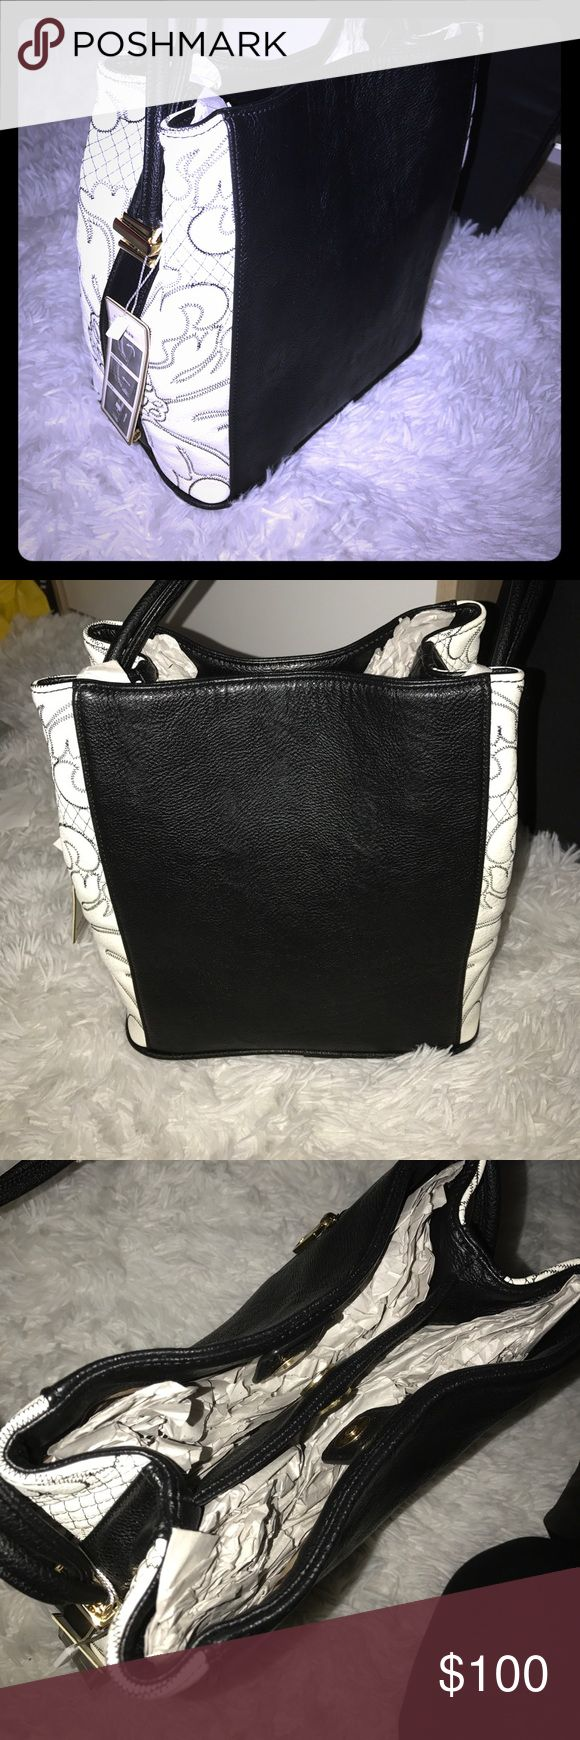 Black and white Purse This is a lovely black and white Purse and handle can be adjusted! It has amazing detail on the side will make a mom happy this coming MOTHERS DAY 🙌👏😍 Bags Shoulder Bags